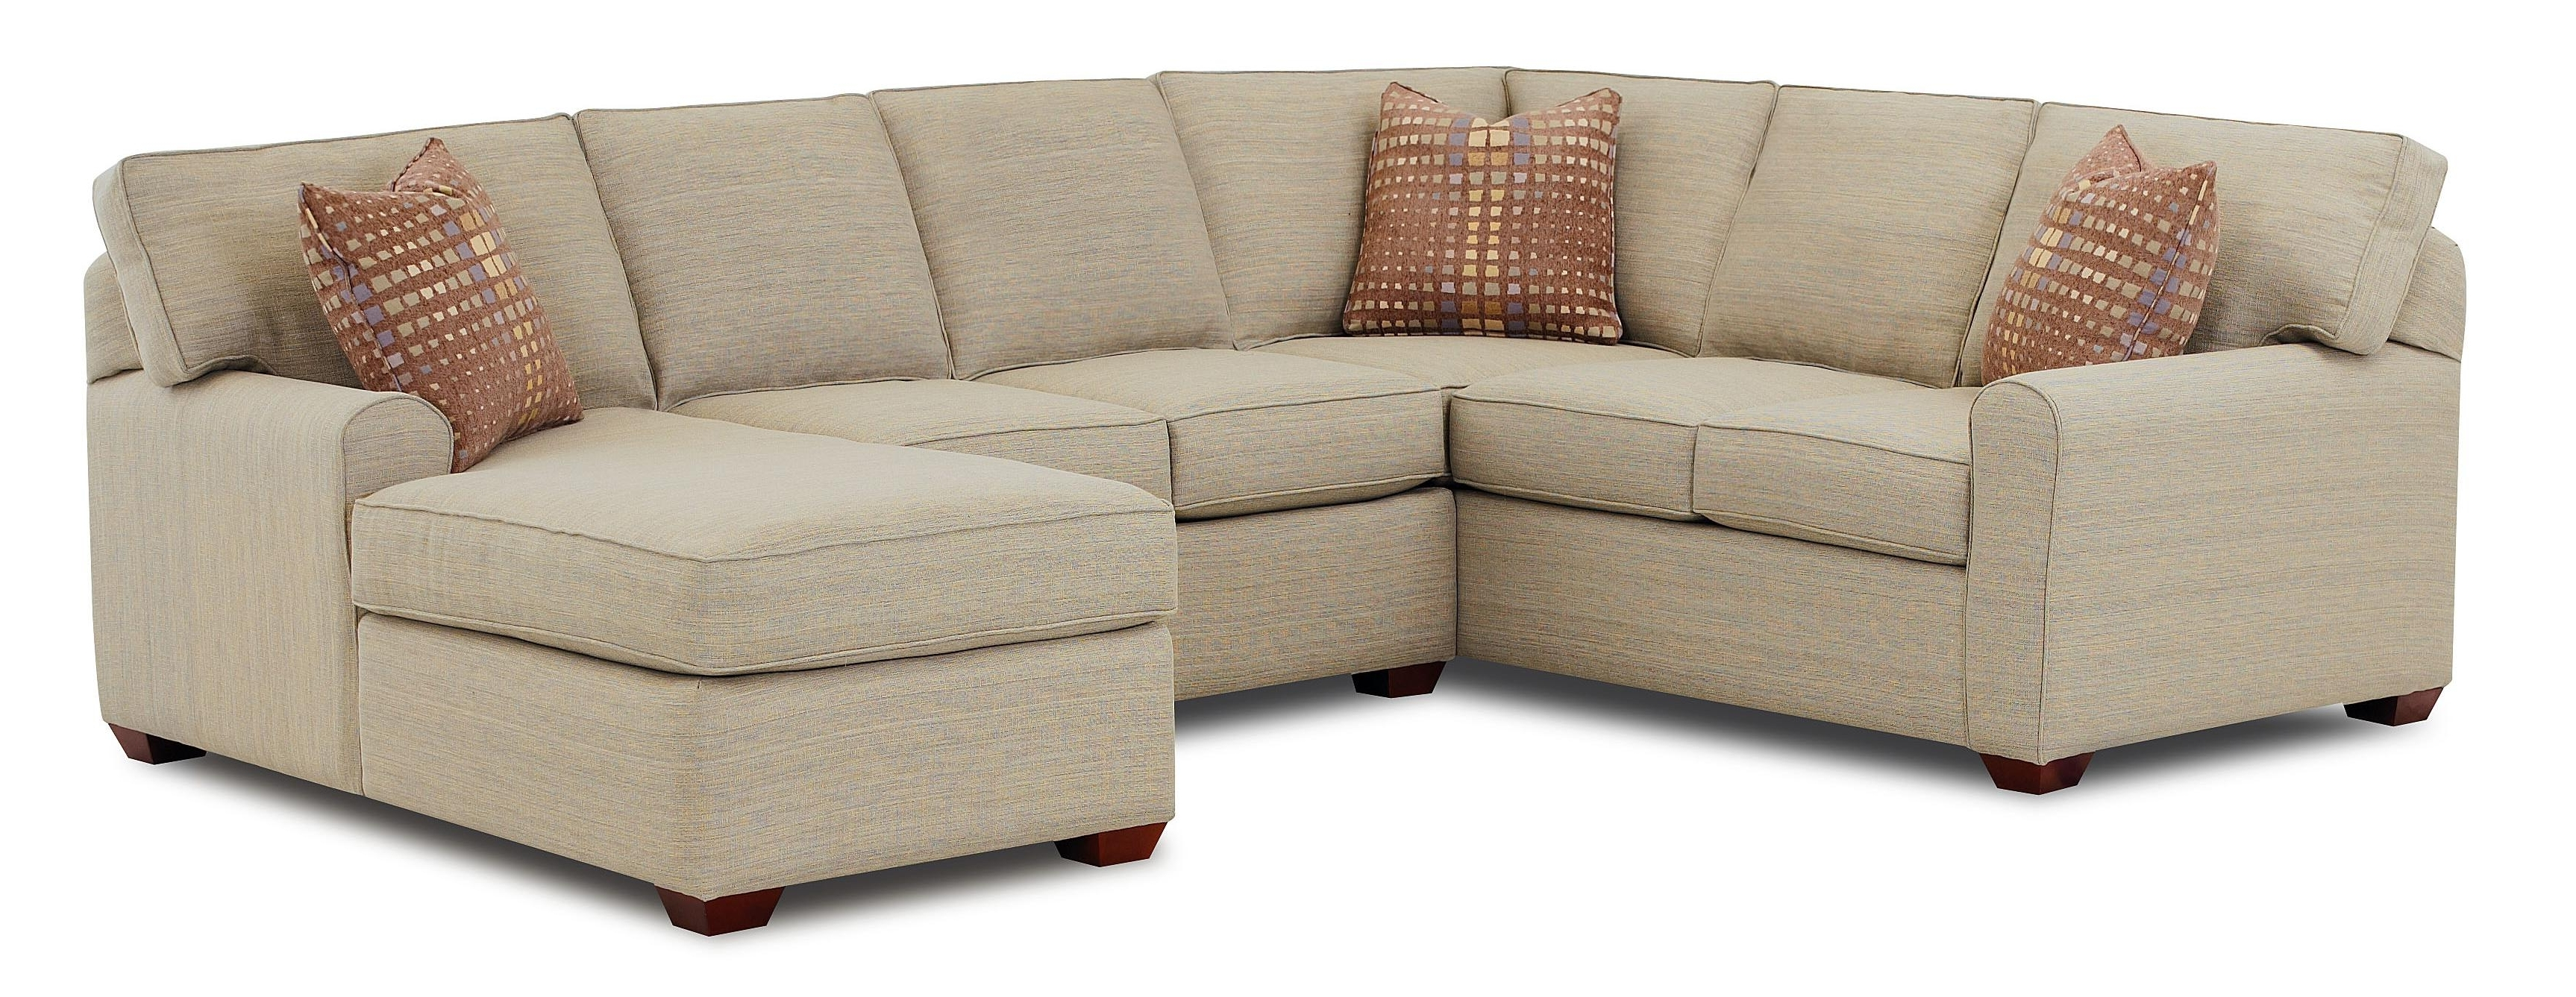 Featured Photo of Sectional Sofas With Chaise Lounge